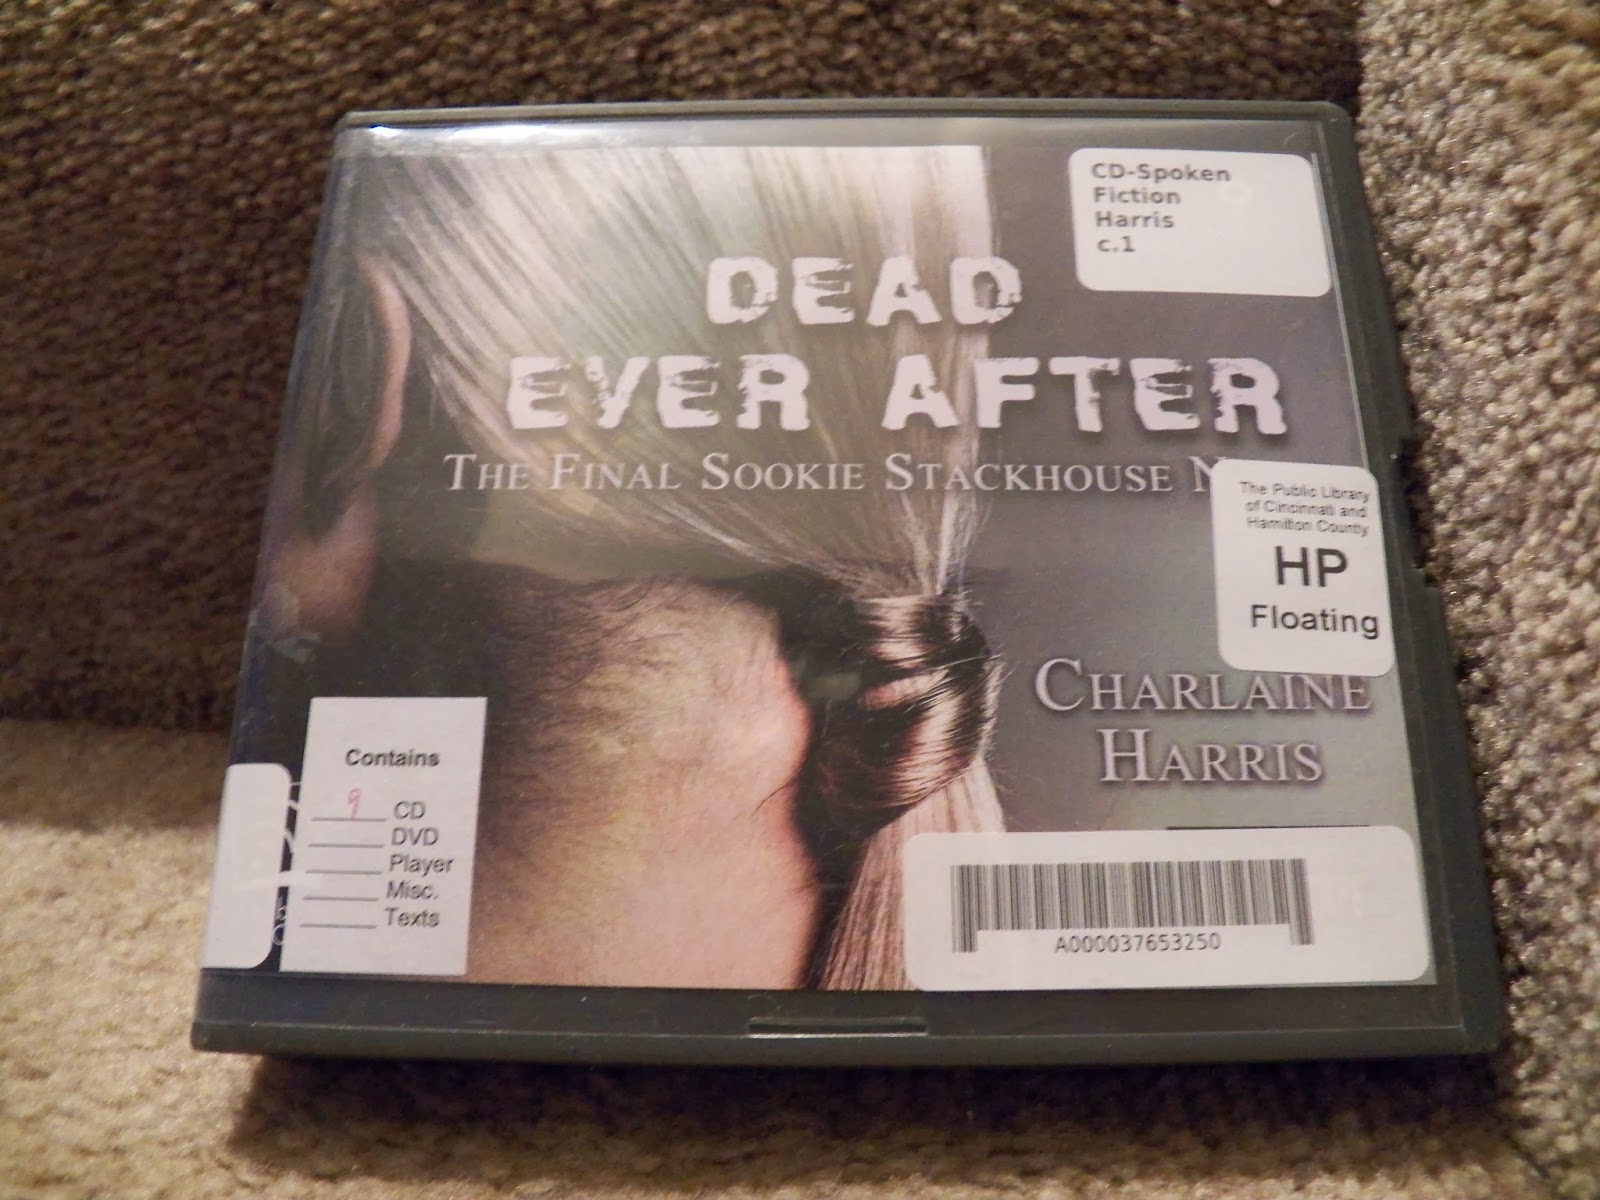 http://www.amazon.com/Dead-Ever-After-Sookie-Stackhouse/dp/193700788X